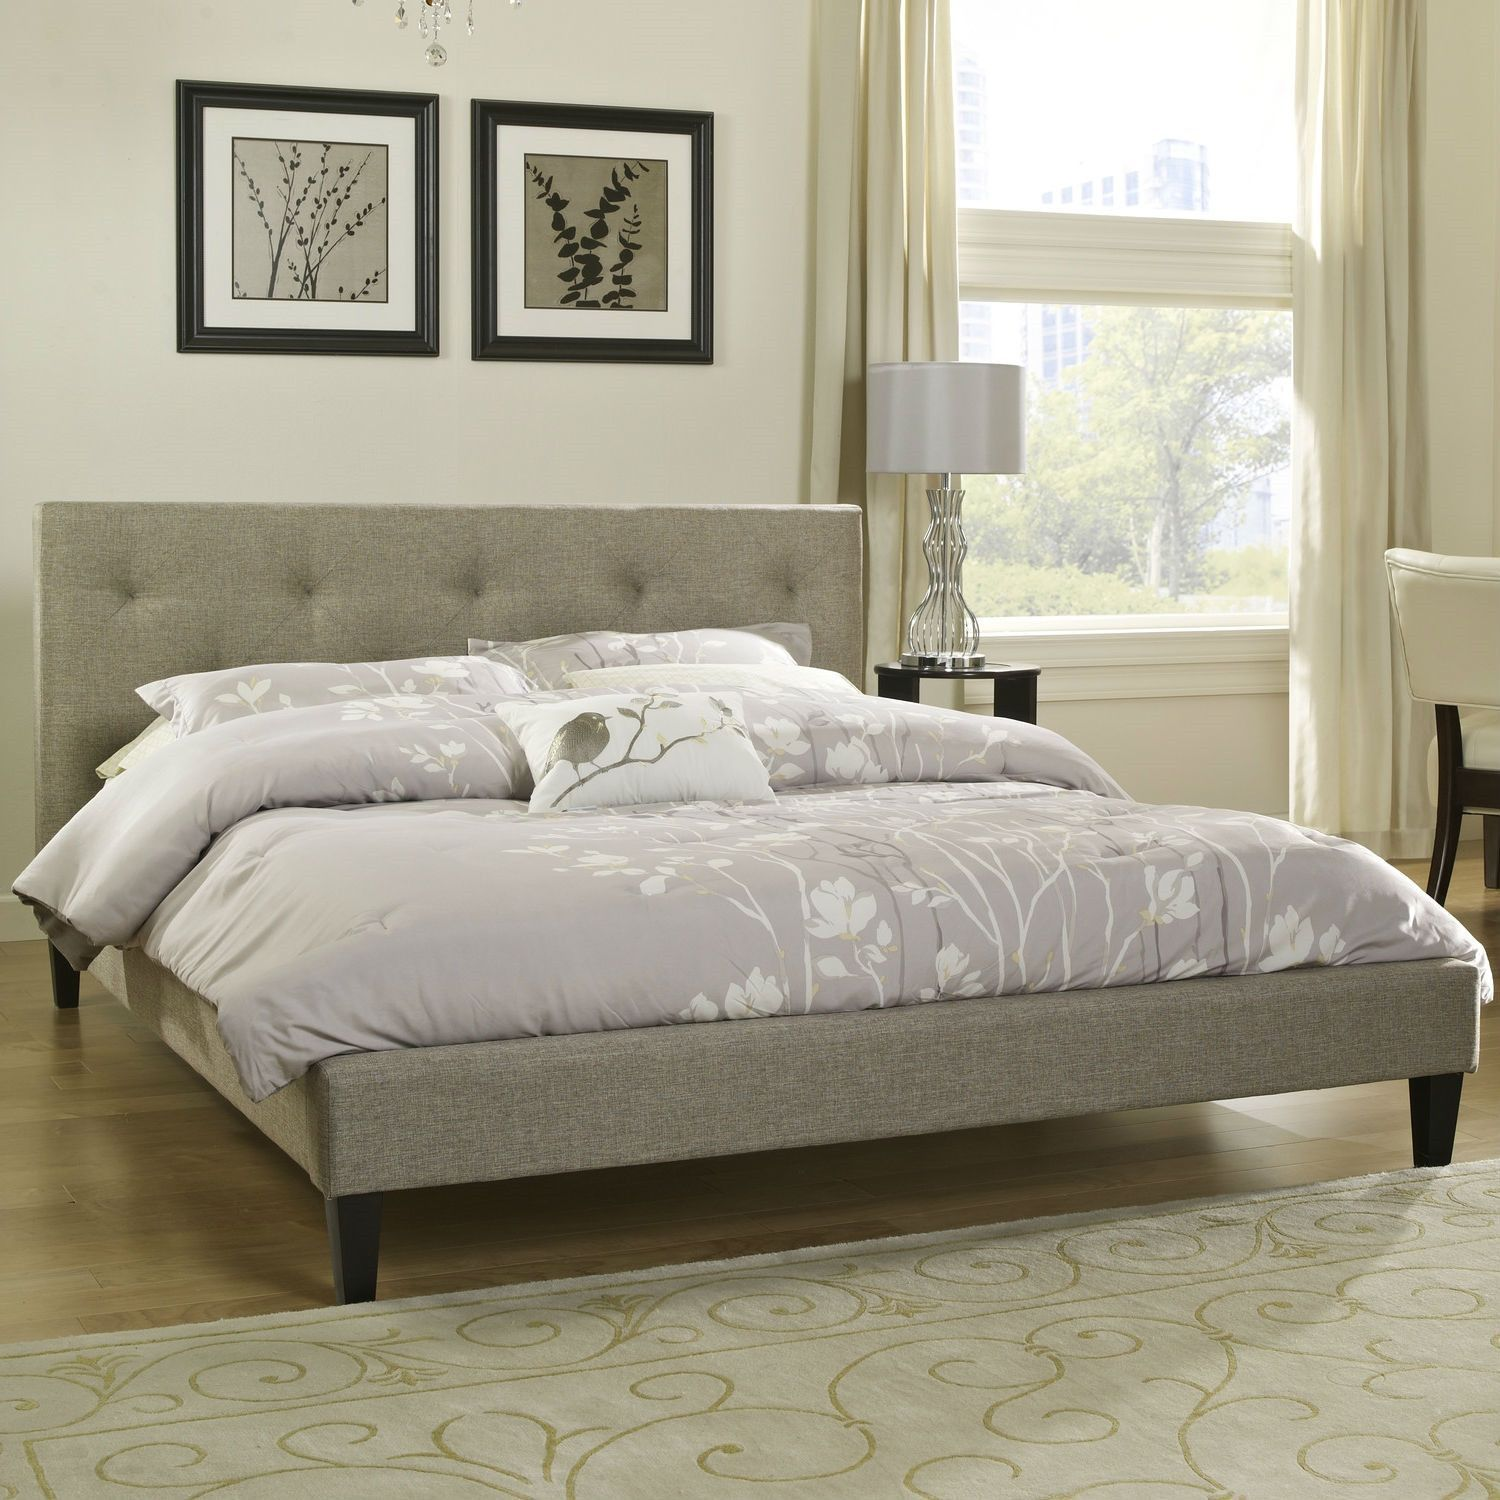 Twin Size Modern Classic Upholstered Platform Bed With Tufted Headboard